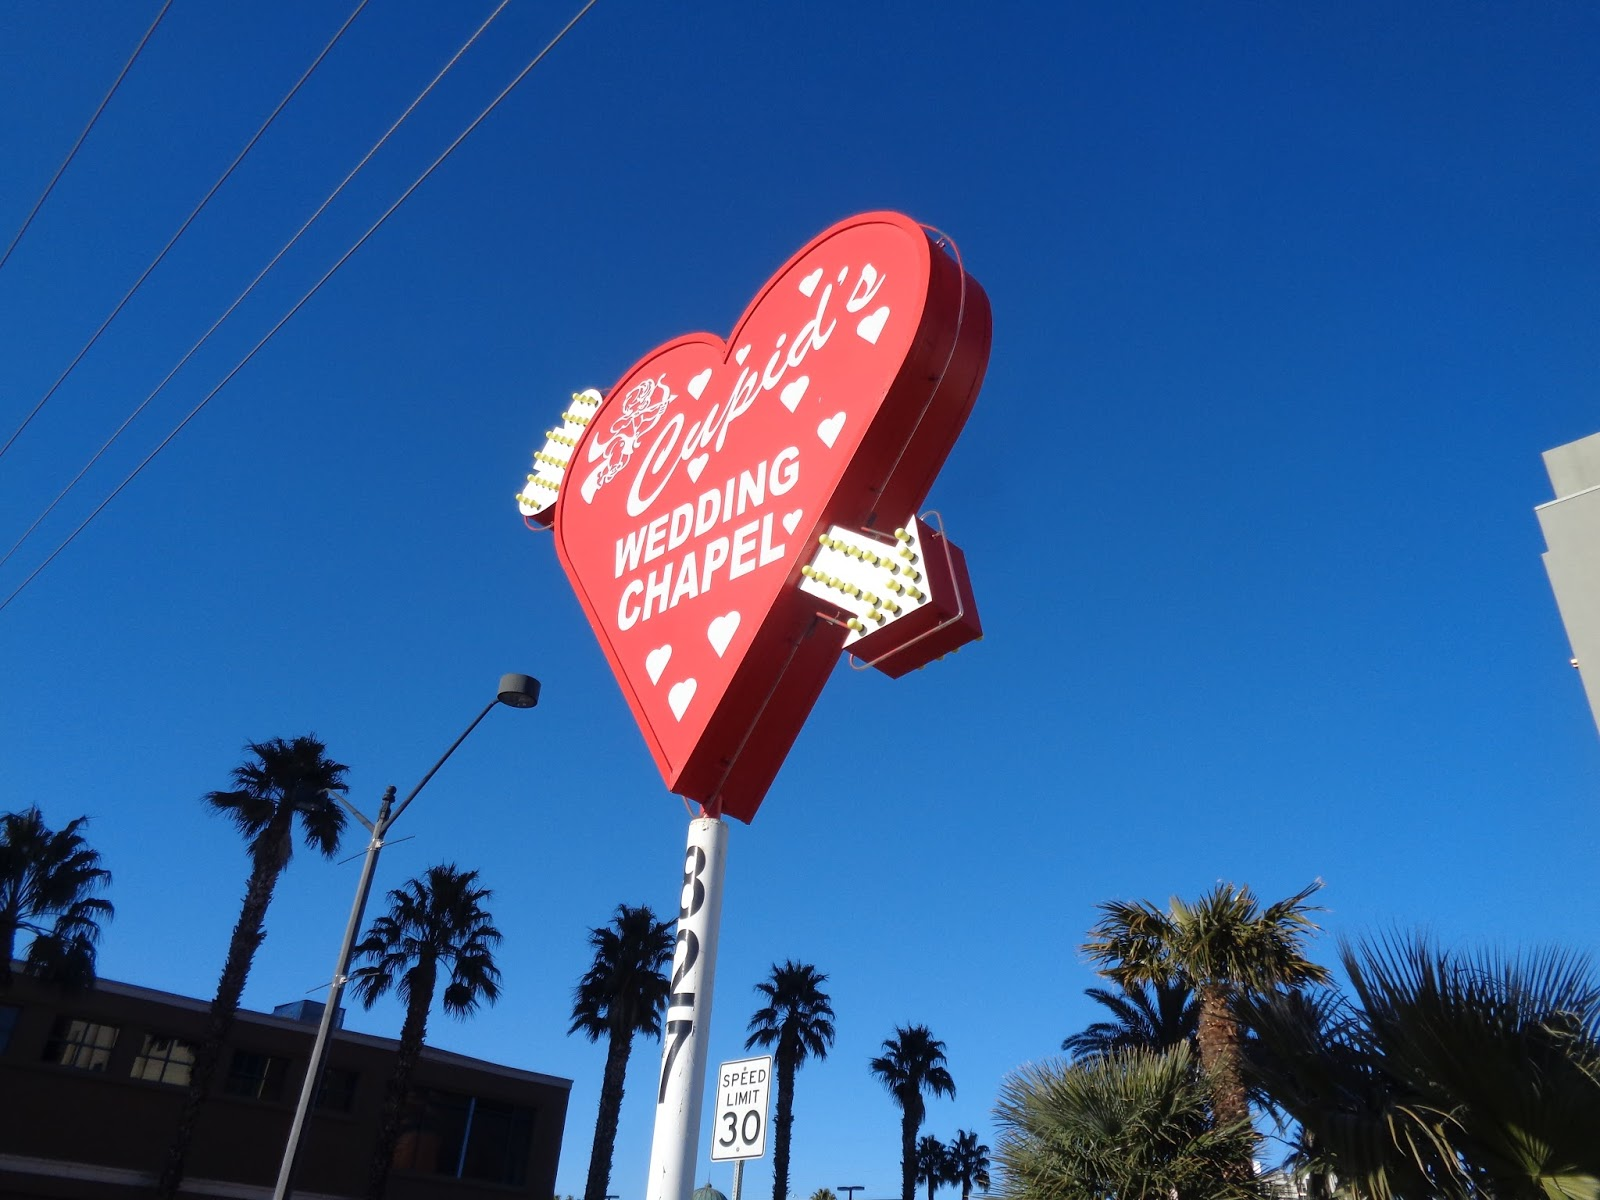 about those las vegas weddings wedding chapel las vegas About those Las Vegas Weddings